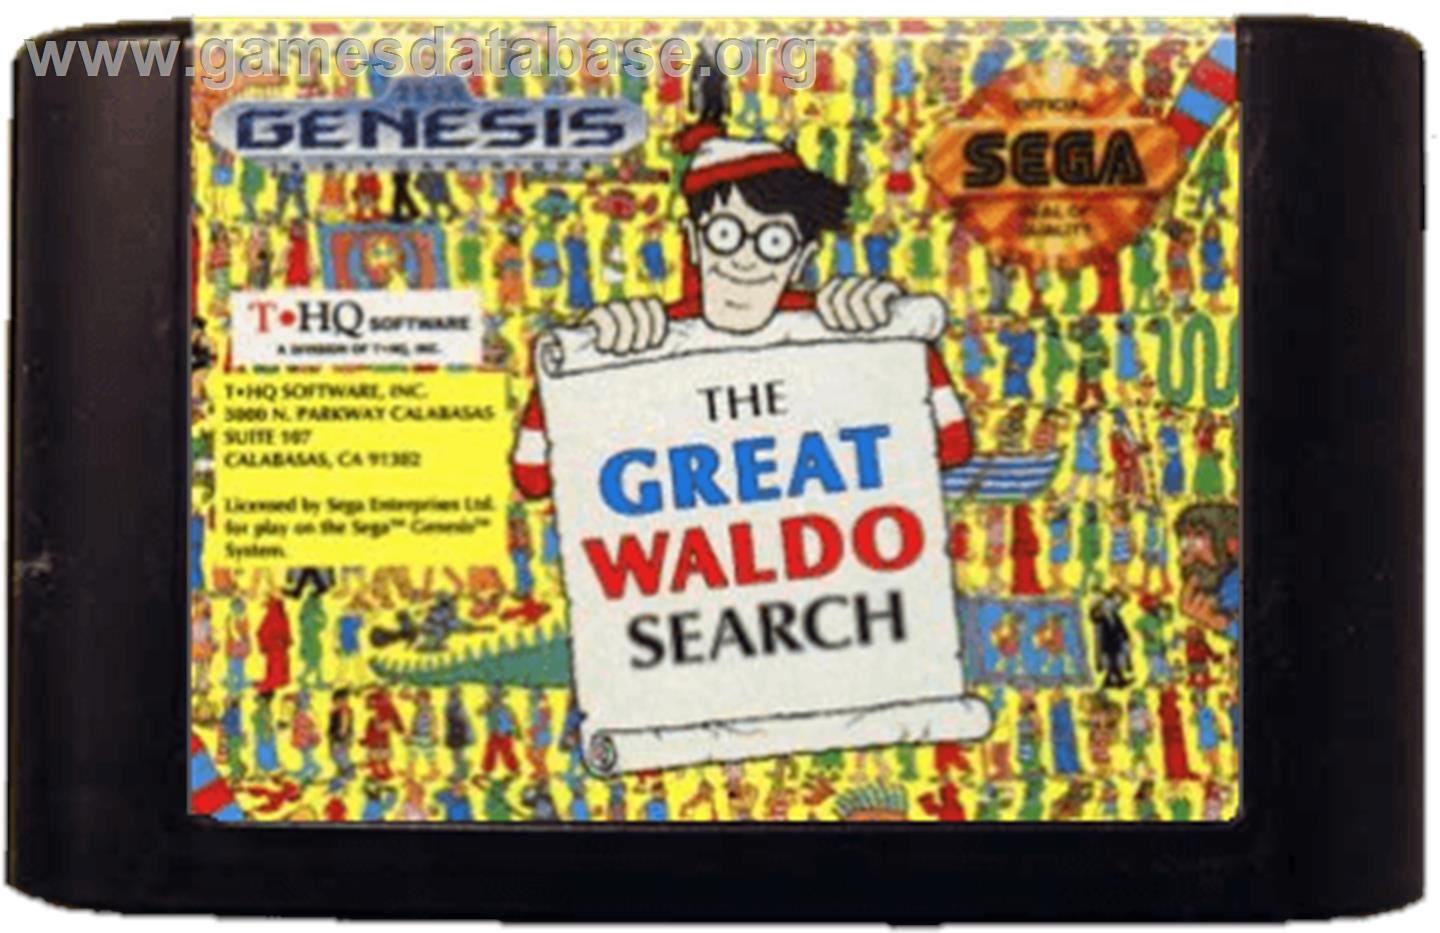 The Great Waldo Search (video game)